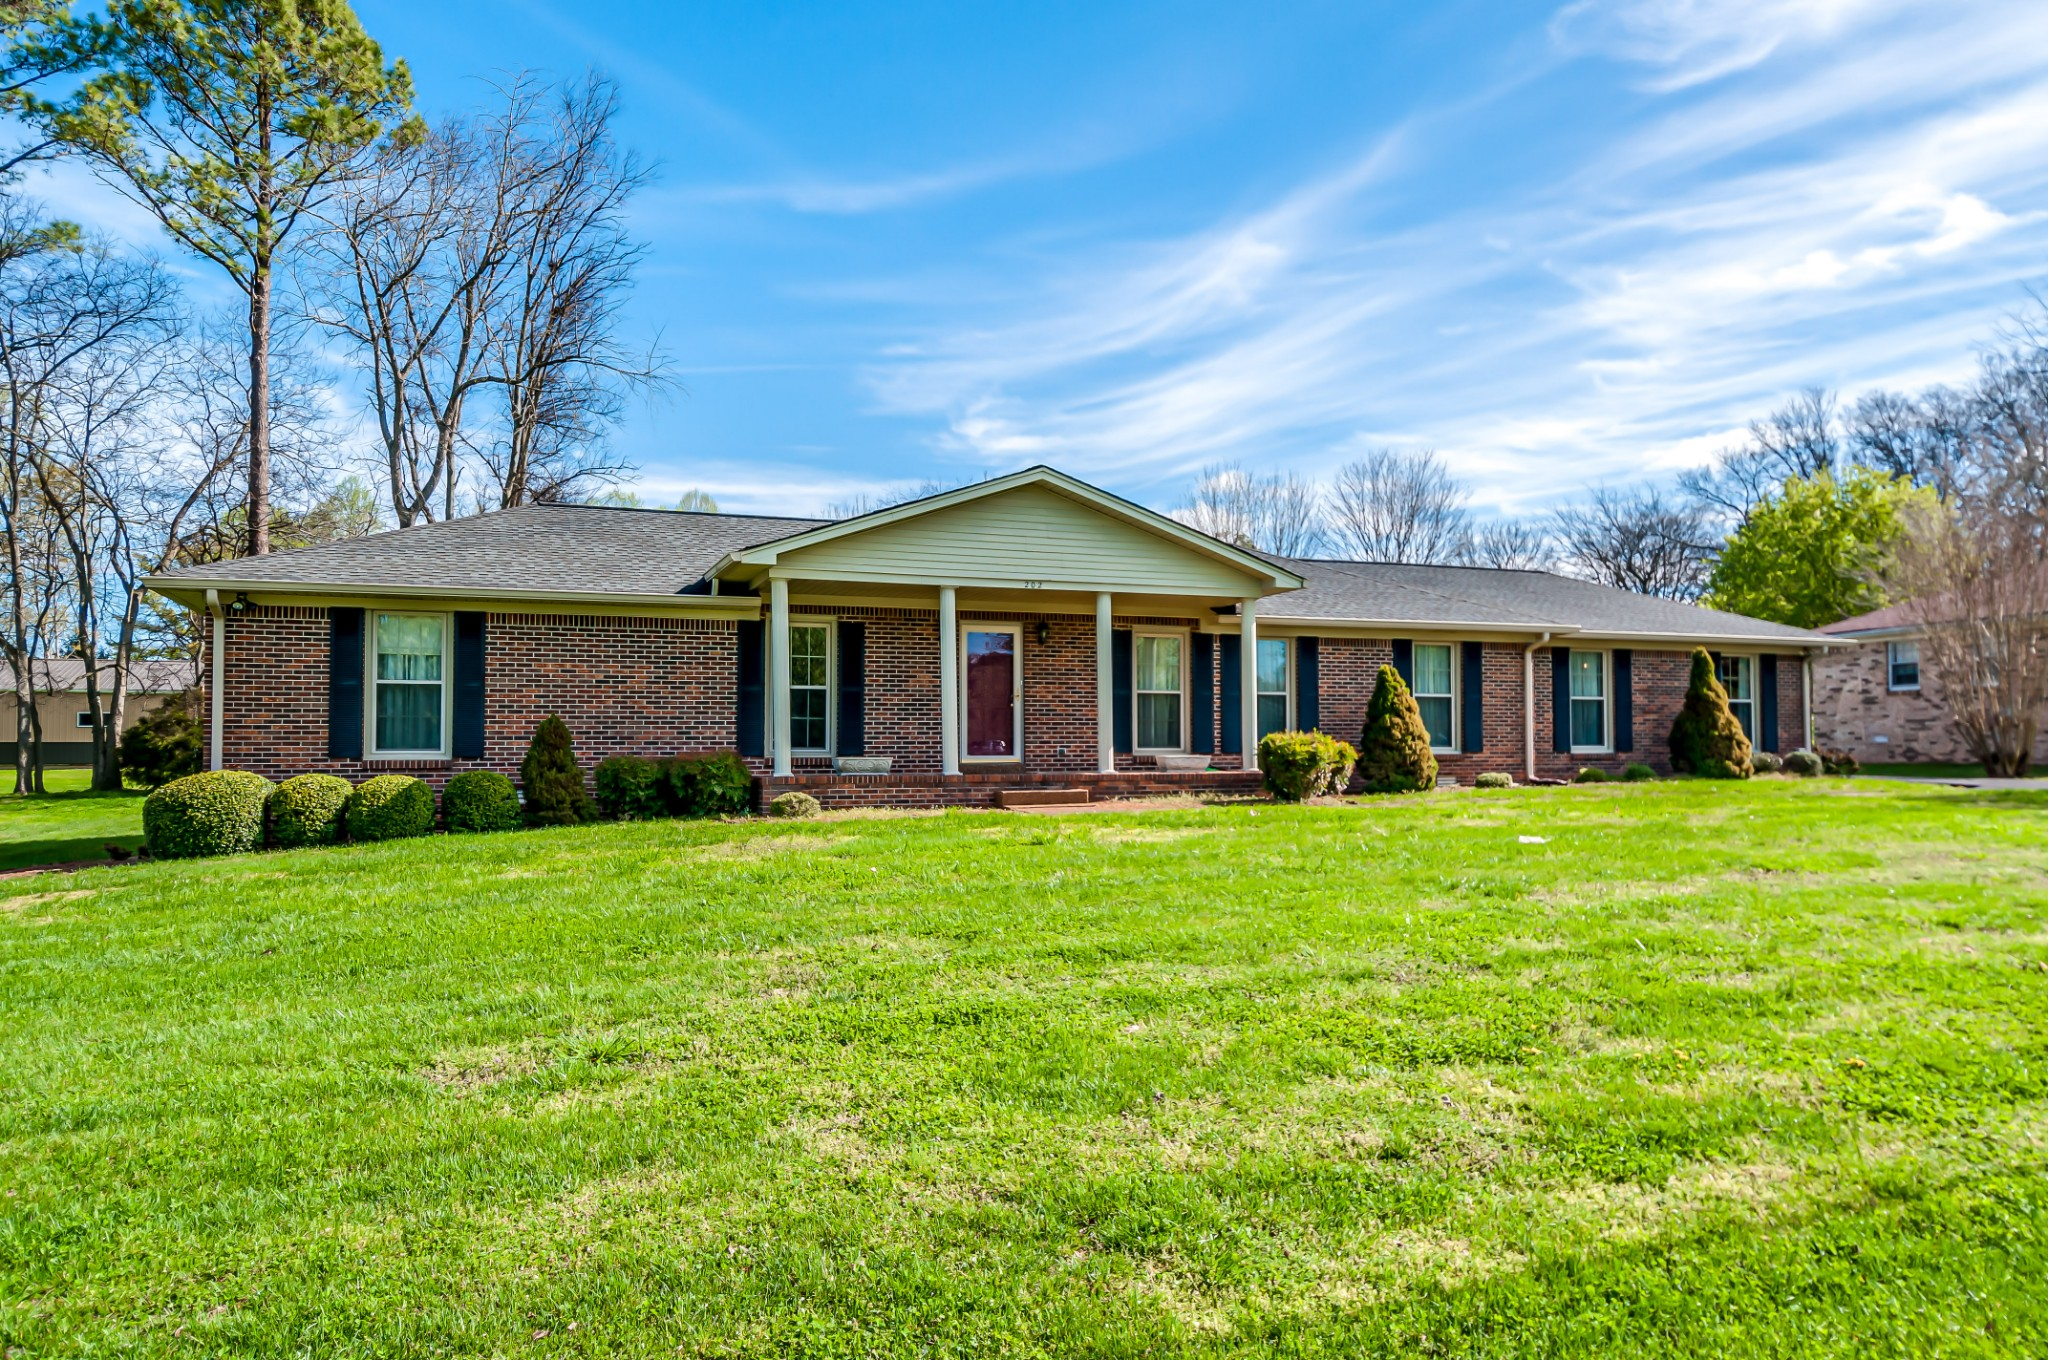 Brick Ranch home, close to town, large yard.  Covered carport and garage. Outbuilding. New electrical panel. Vinyl windows, newer roof, gas fireplace.  Home is being sold in AS-IS condition to settle estate.